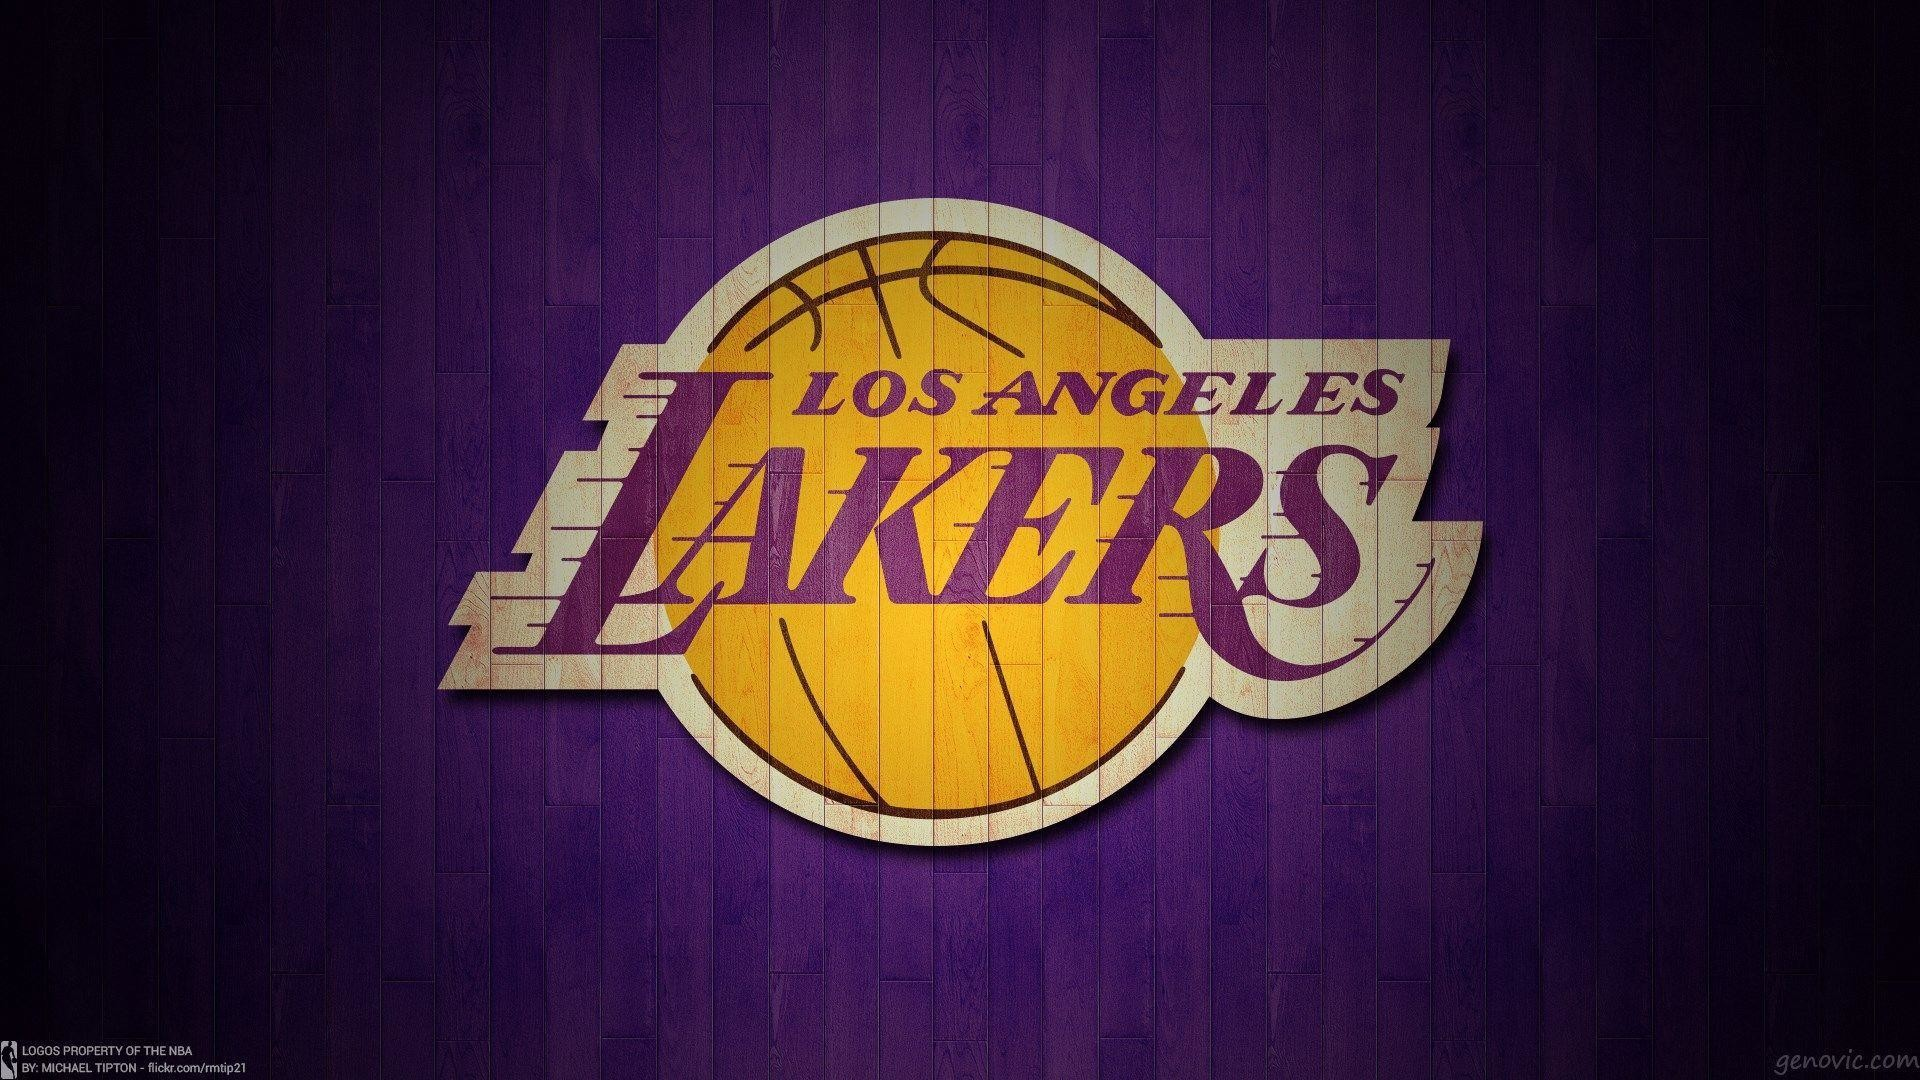 Lakers Wallpapers 77 images 1920x1080